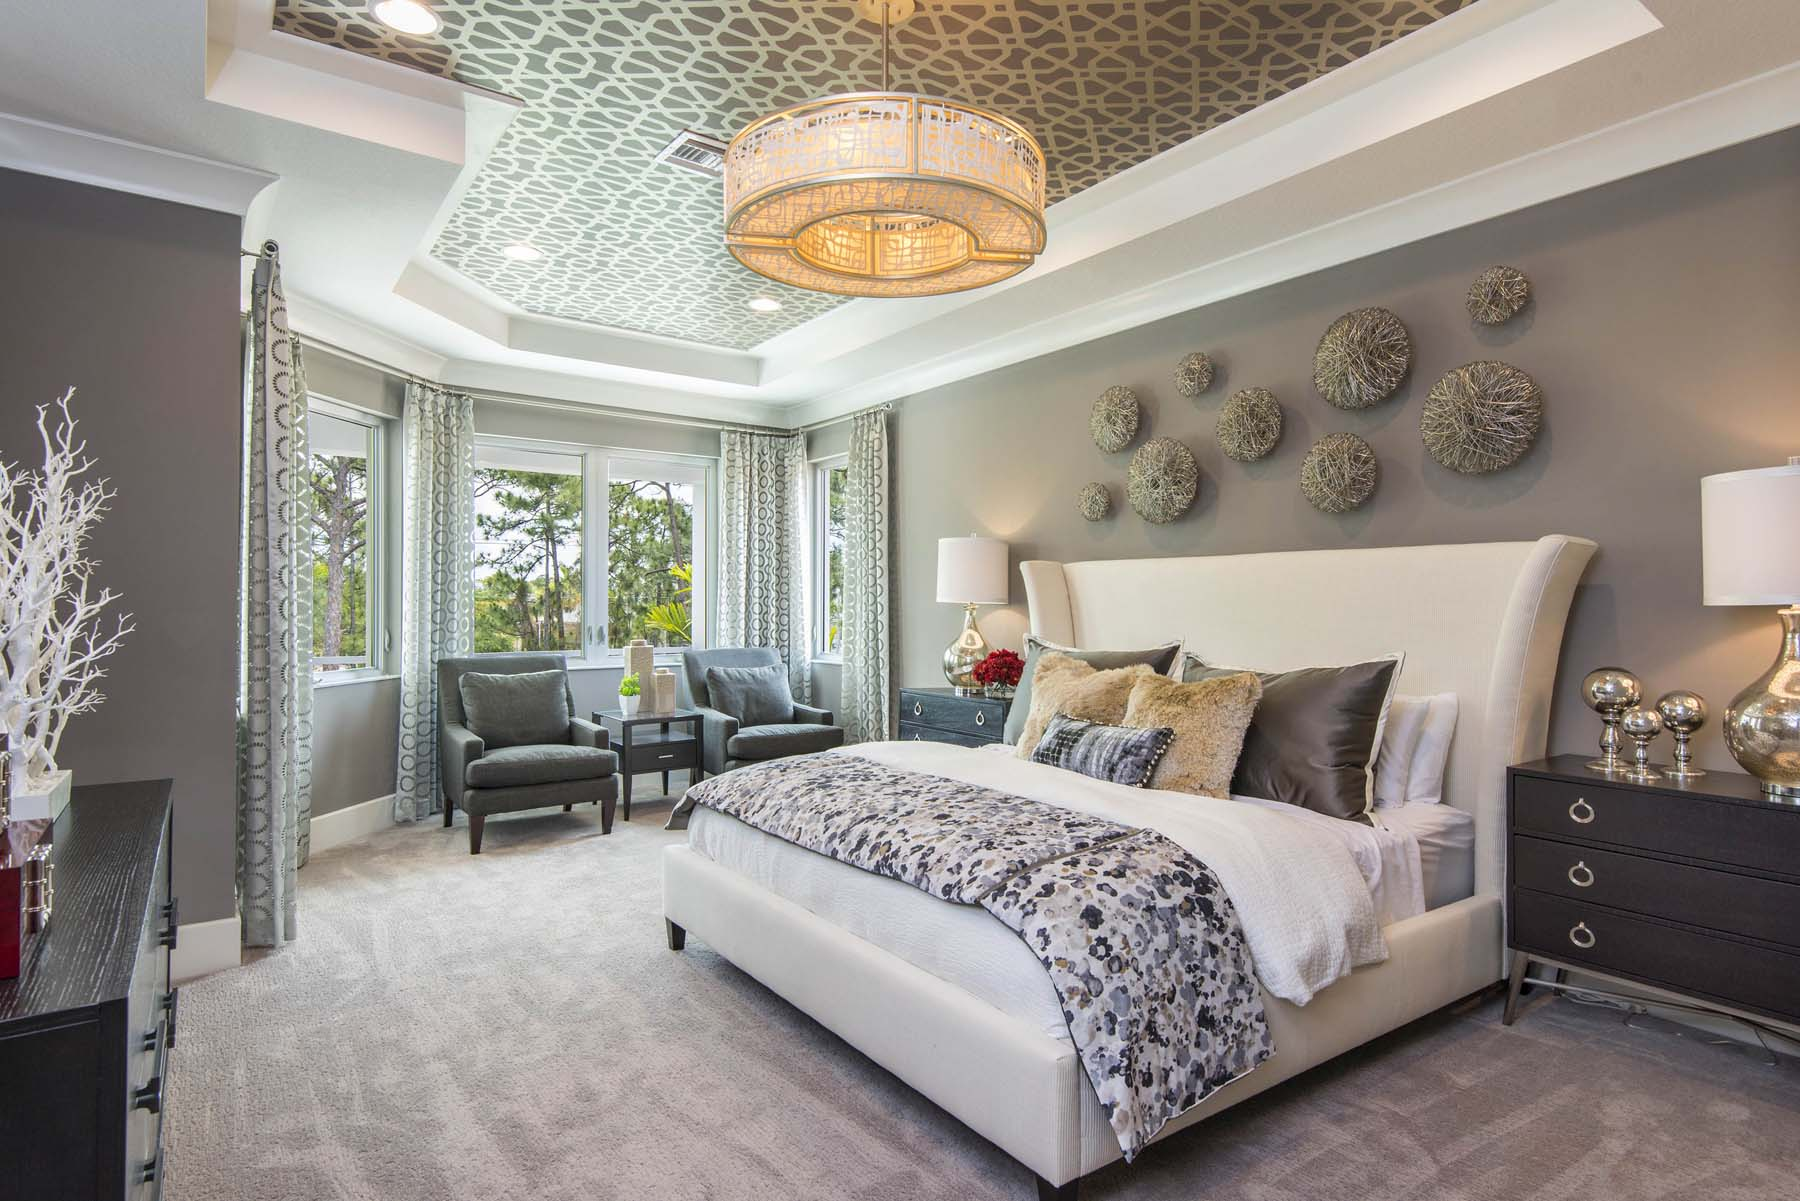 Kolter Homes' Edge B master suite wins top honors